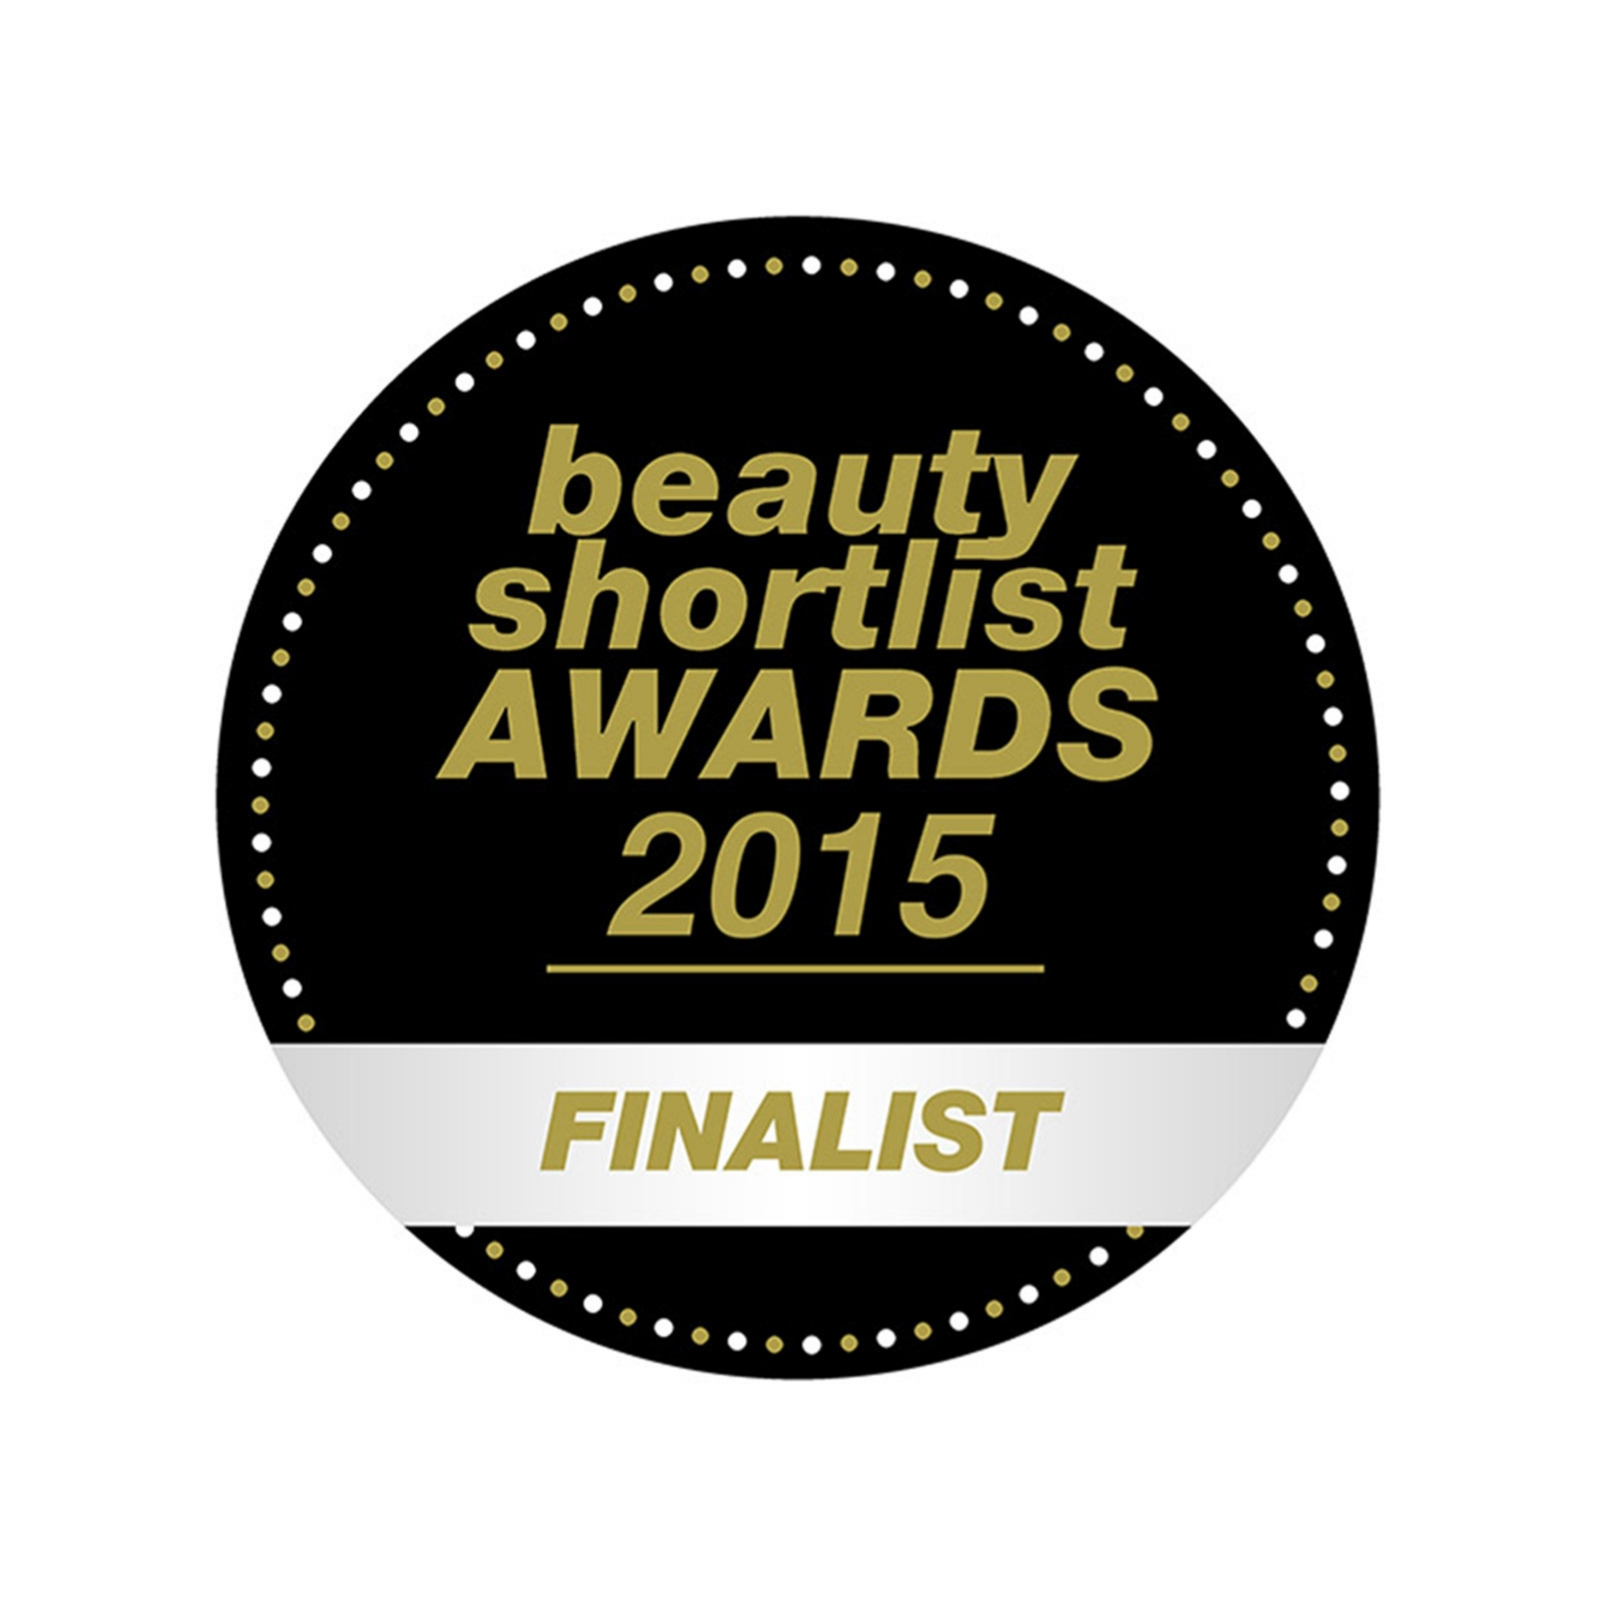 Finalist in the Beauty Shortlist Awards for Best Shampoo; Revive and Shine Natural Conditioner